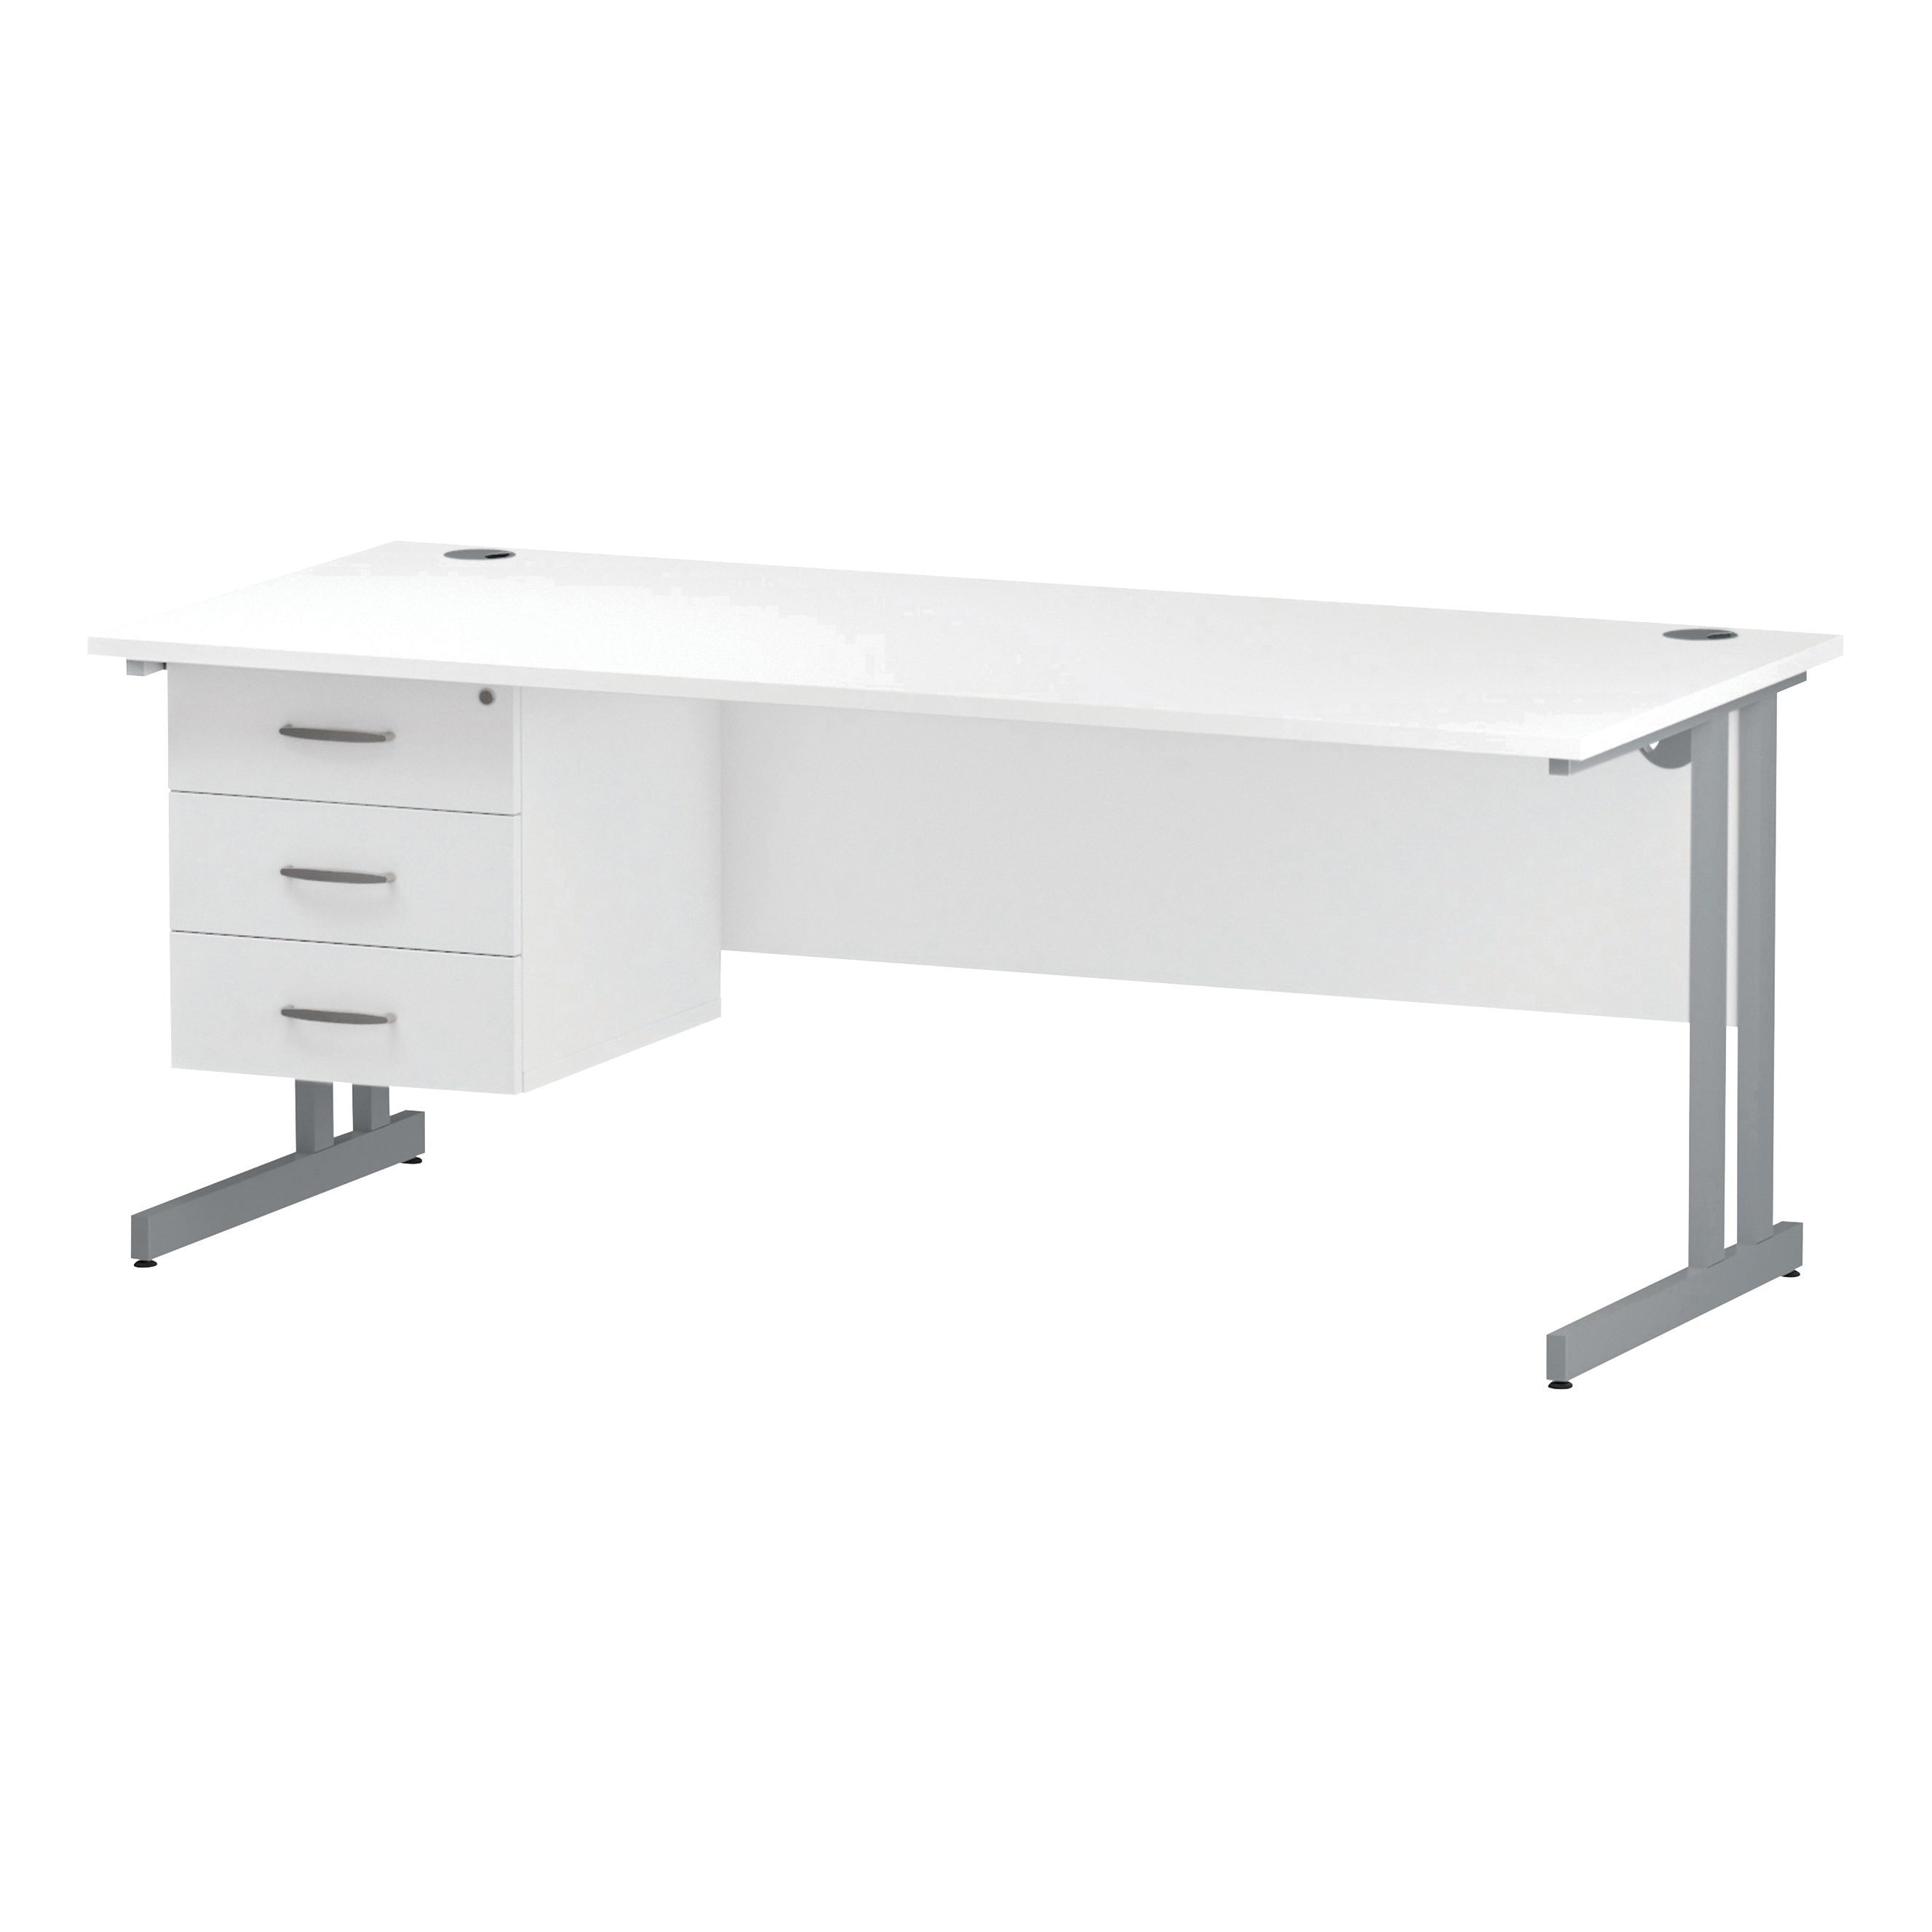 Trexus Rectangular Desk Silver Cantilever Leg 1800x800mm Fixed Pedestal 3 Drawers White Ref I002216